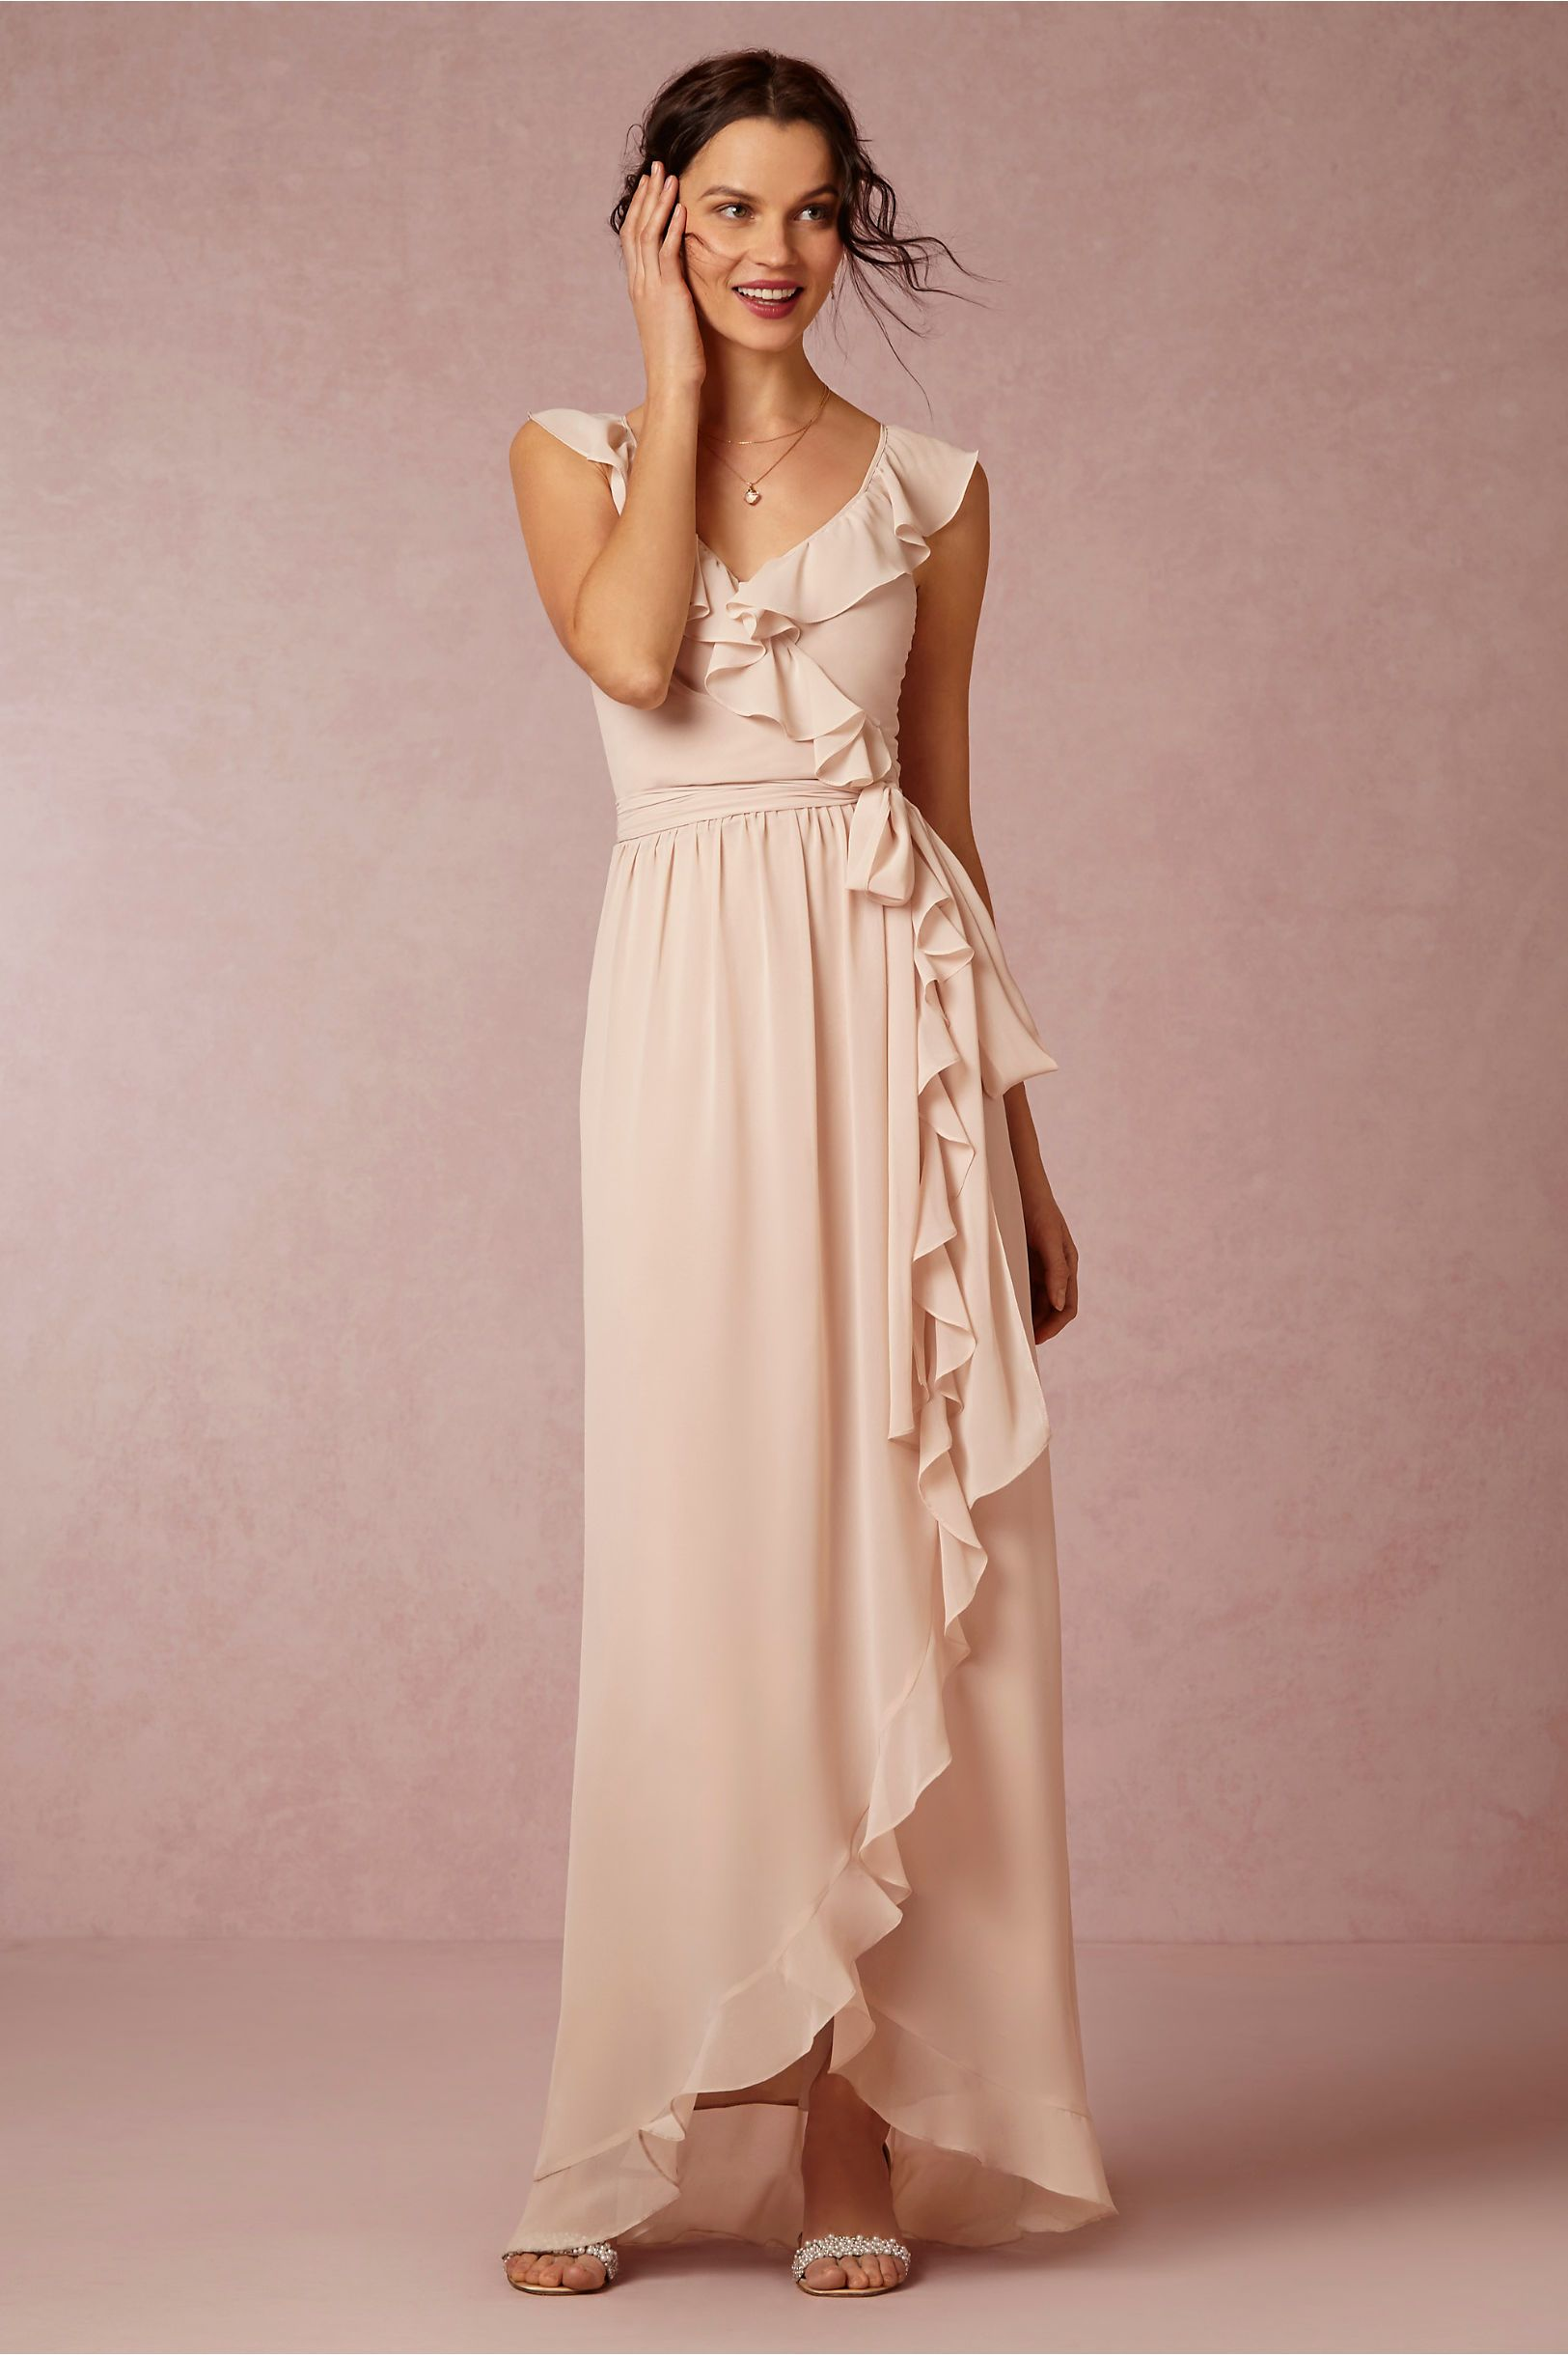 73d8ca412 New Wedding Dresses and Bridal Party Looks for Summer 2015 from BHLDN